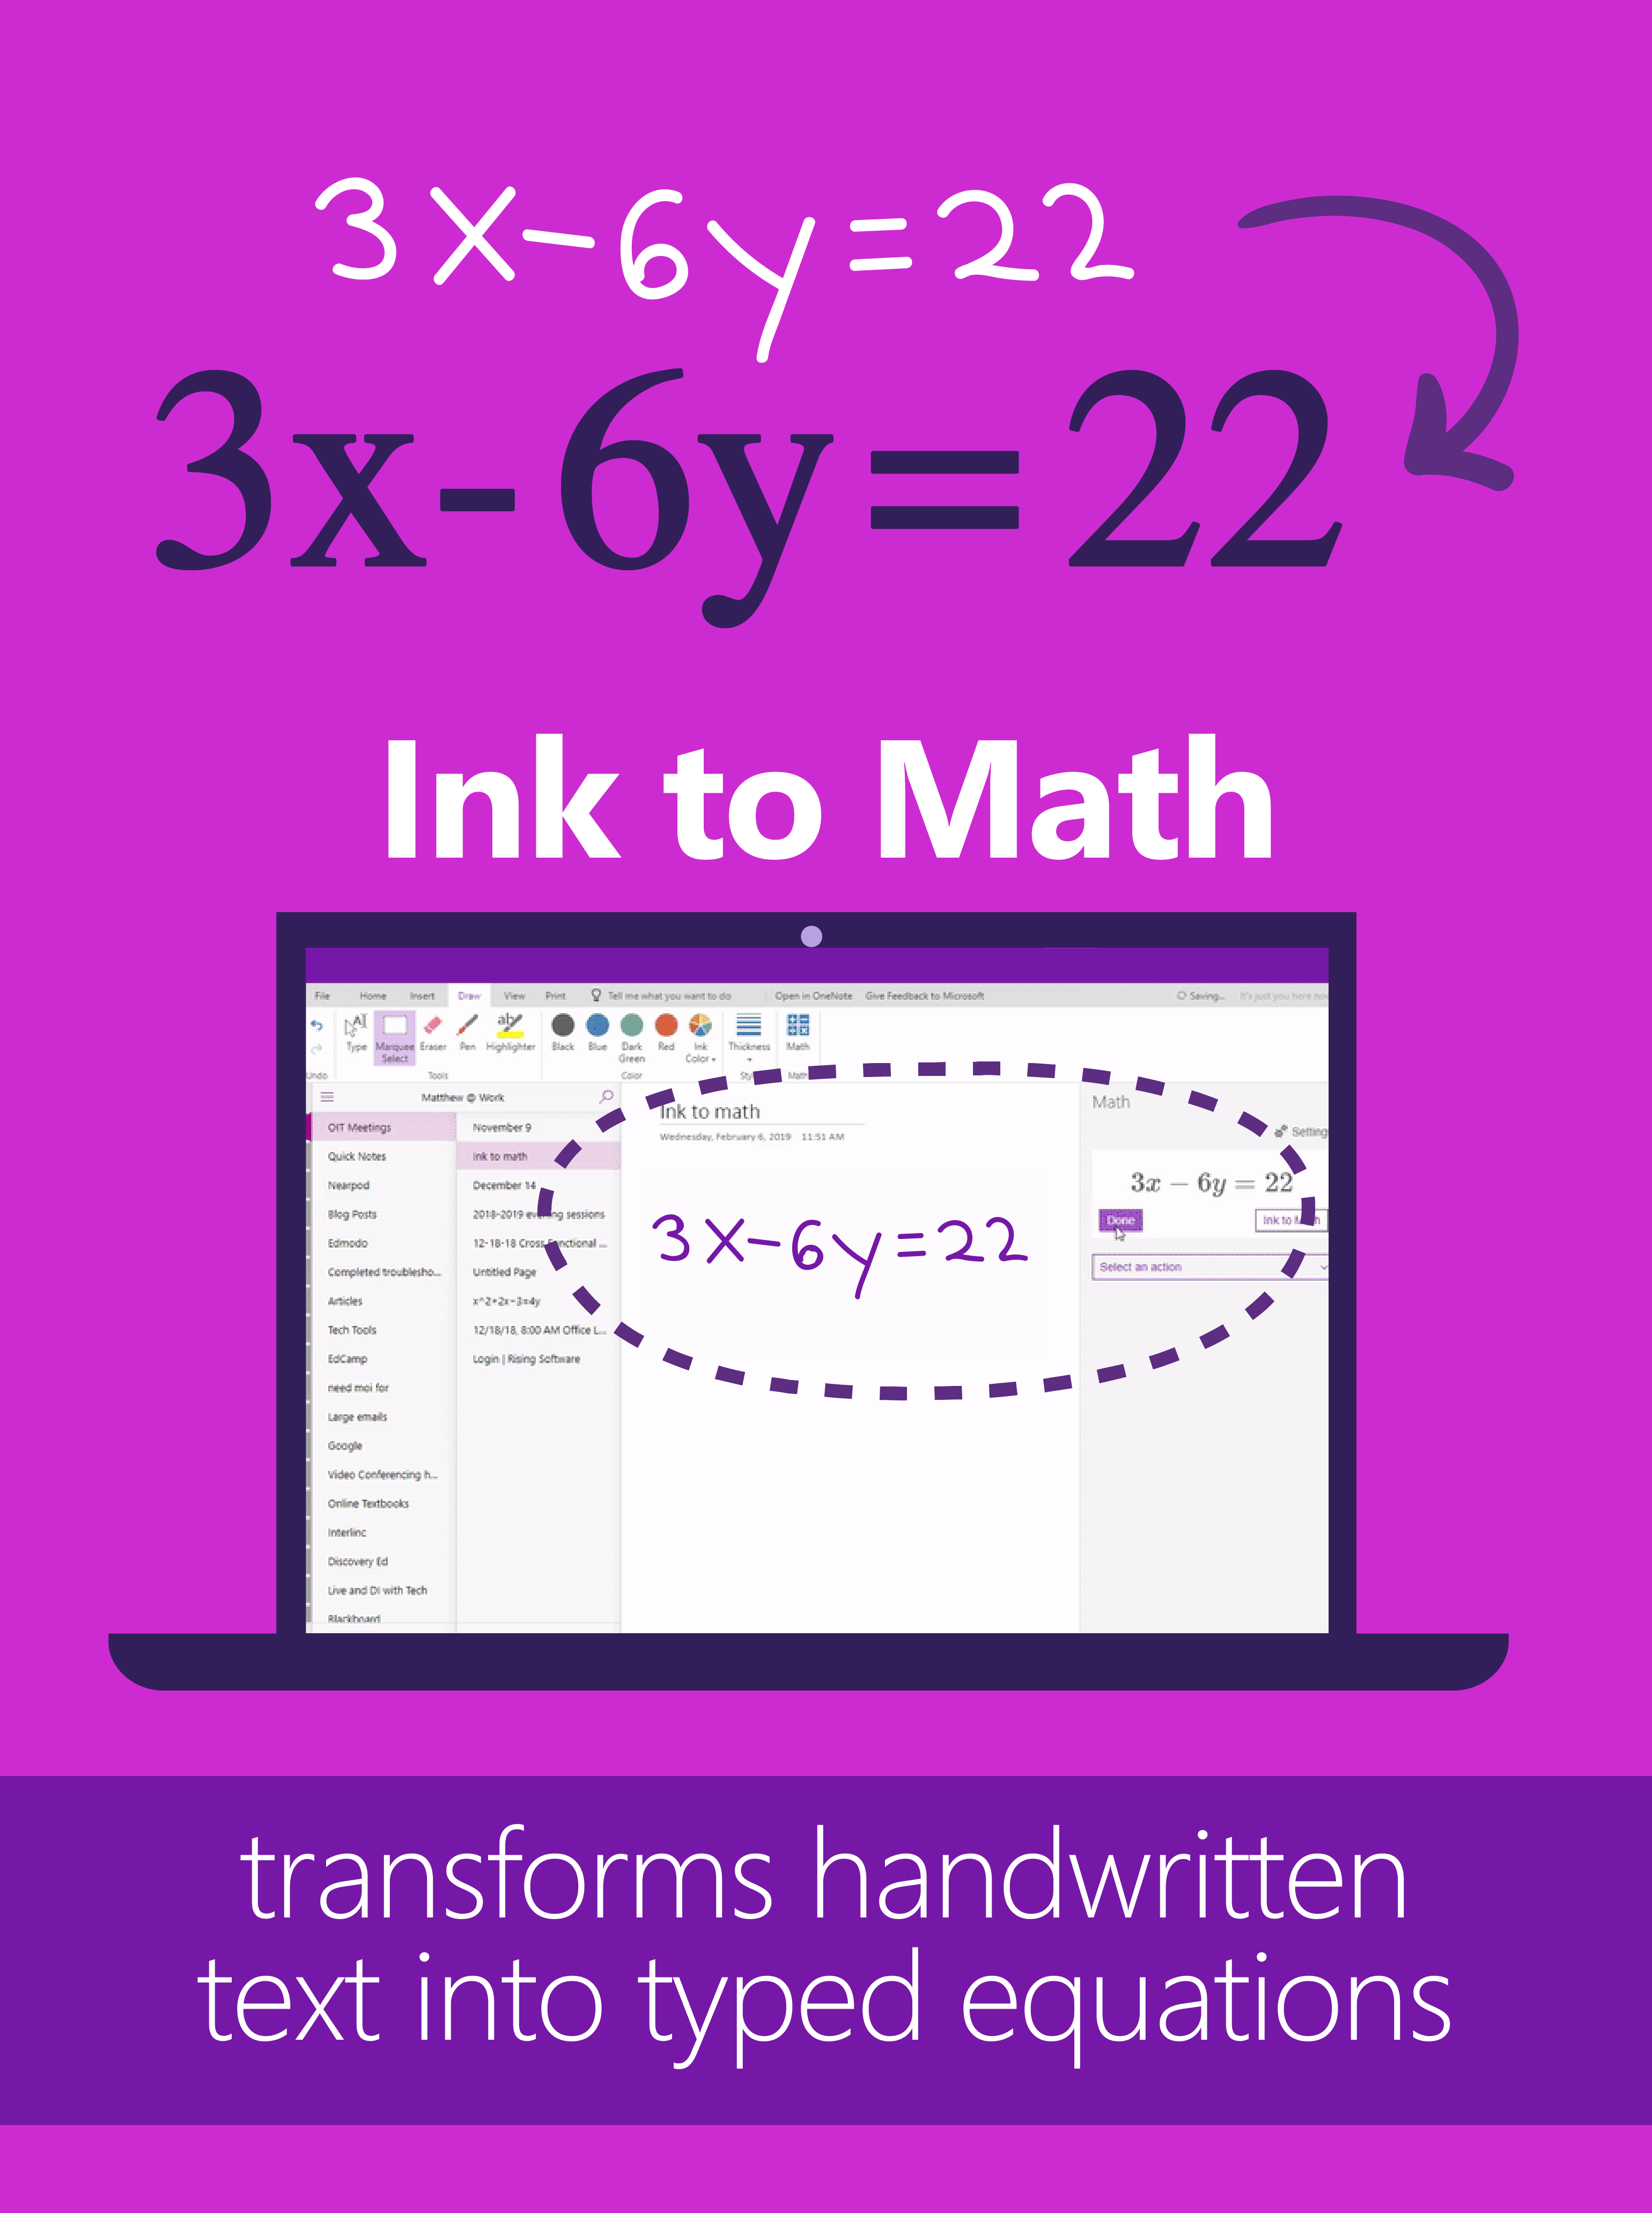 Stem Tip Convert Handwritten Notes Into Typed Equations